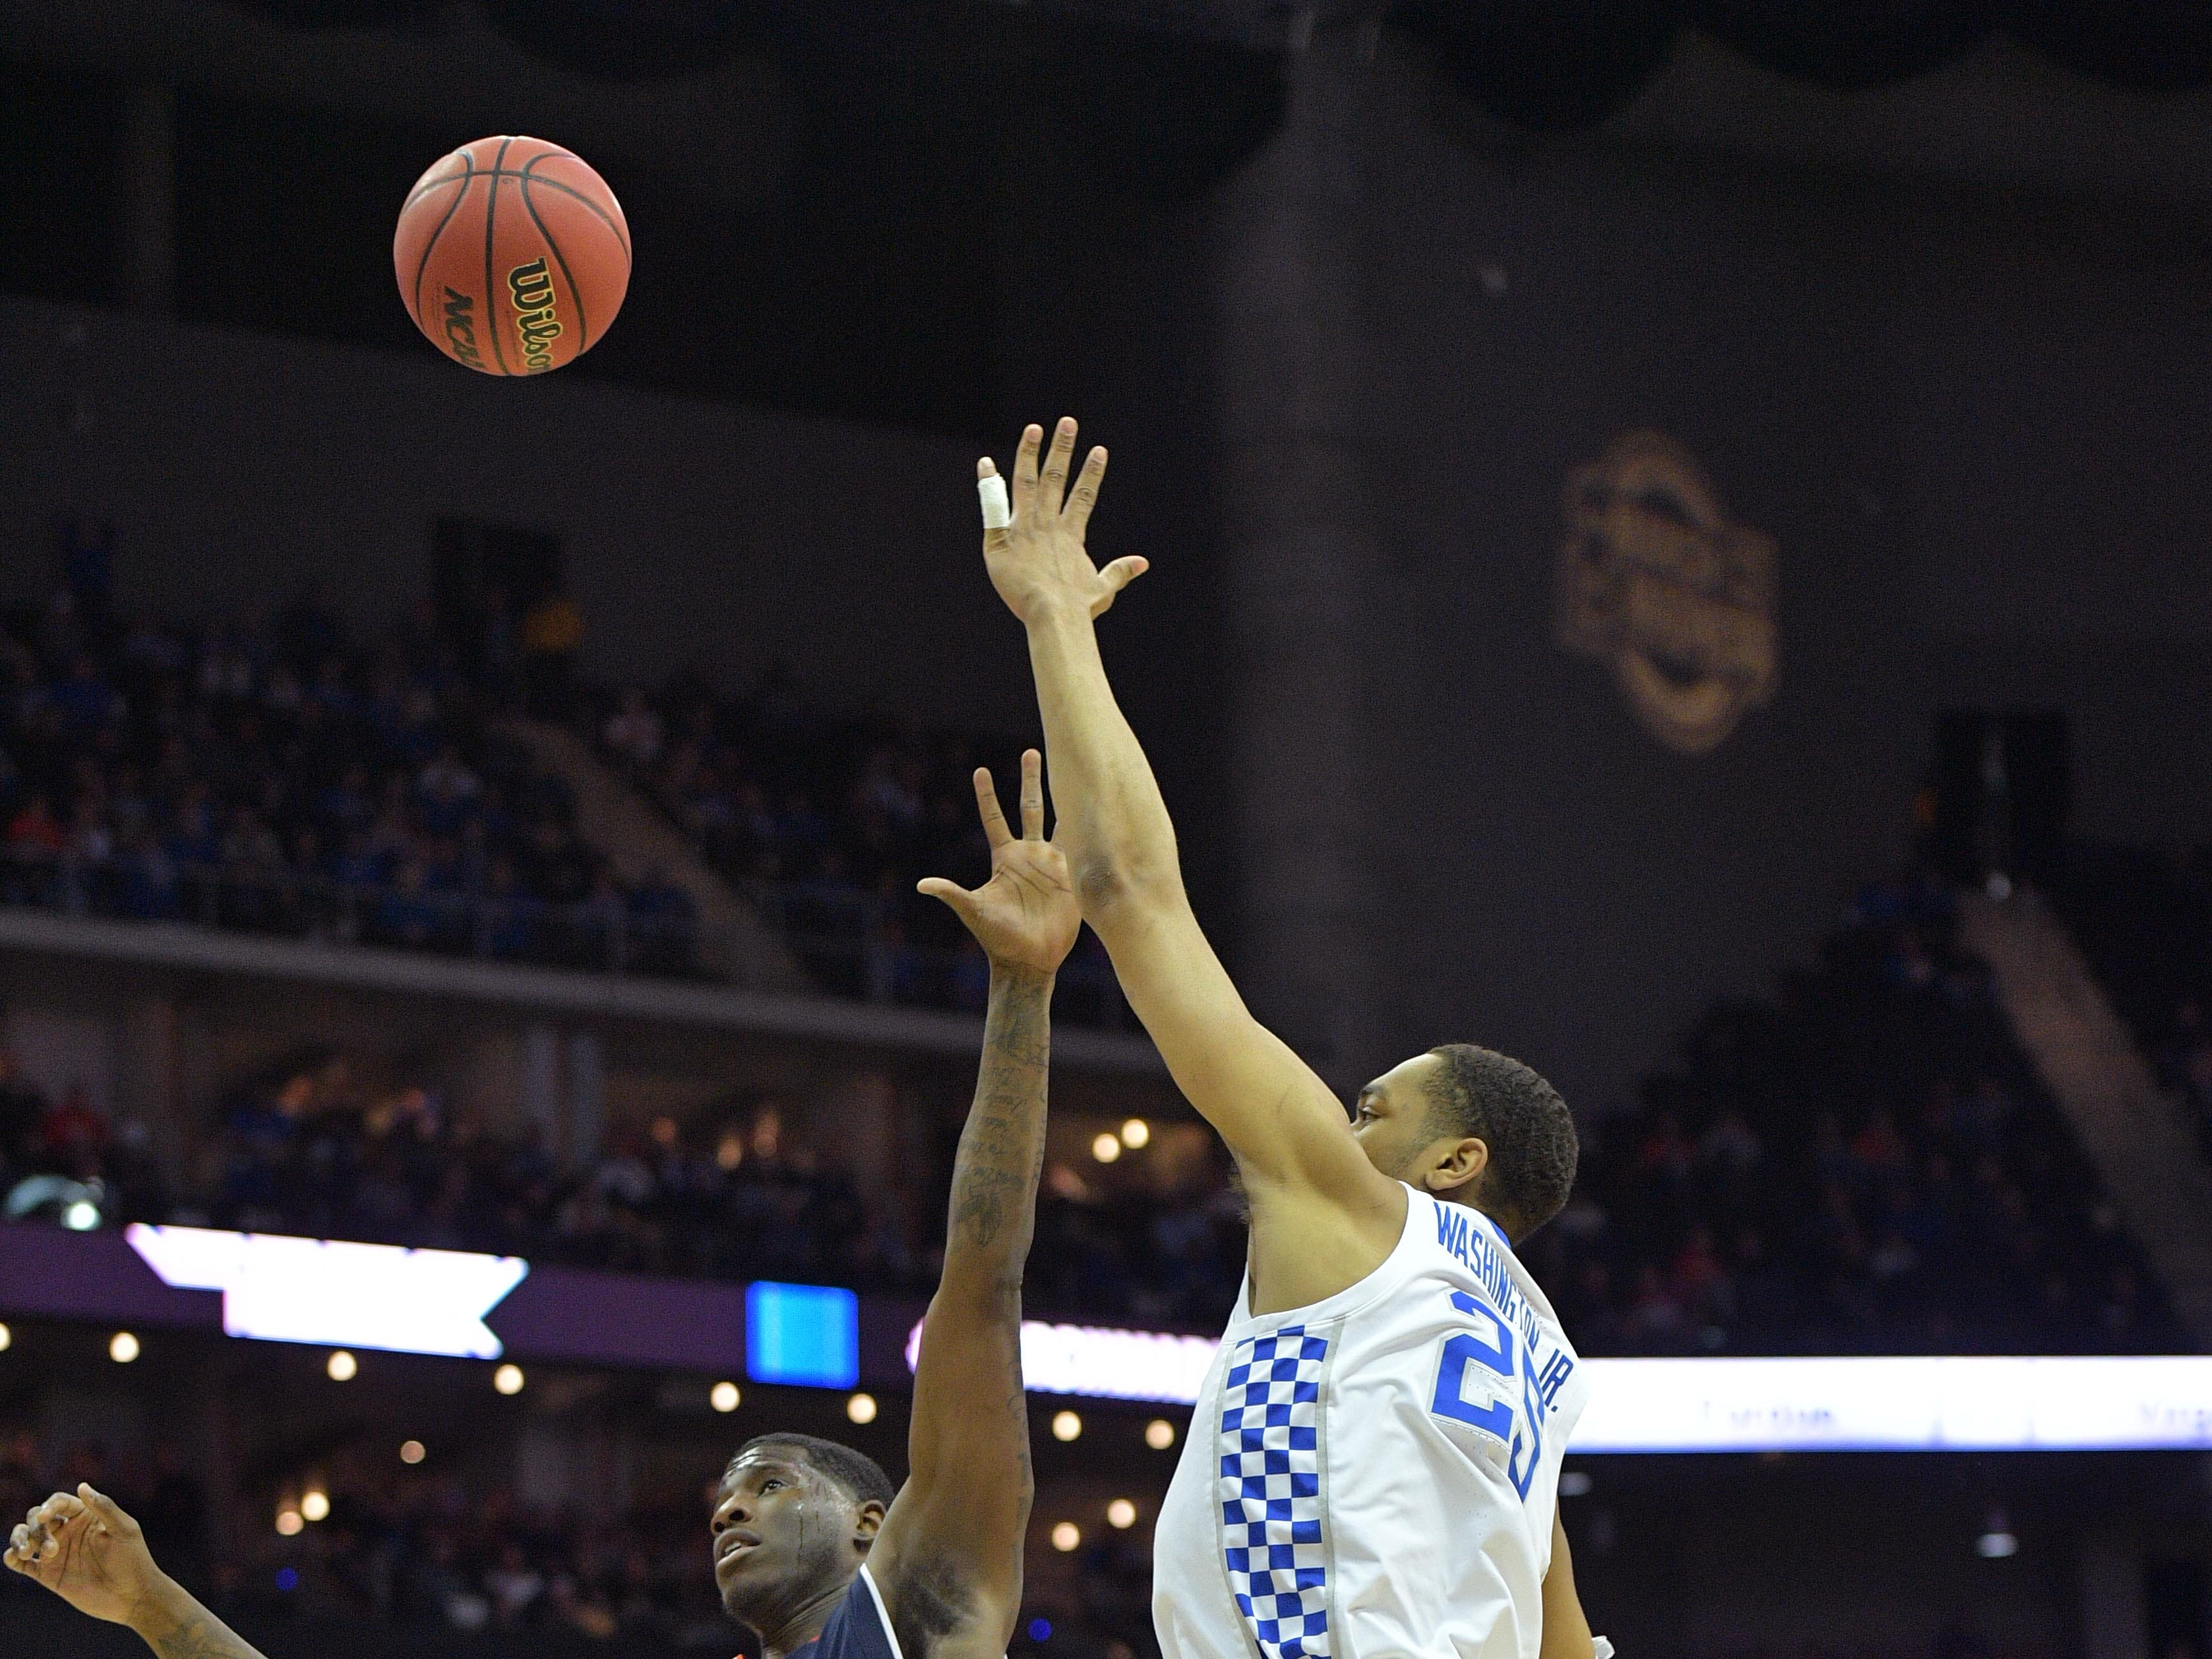 Mar 31, 2019; Kansas City, MO, United States; Kentucky Wildcats forward PJ Washington (25) shoots over Auburn Tigers forward Danjel Purifoy (3) during the first half in the championship game of the midwest regional of the 2019 NCAA Tournament at Sprint Center. Mandatory Credit: Denny Medley-USA TODAY Sports